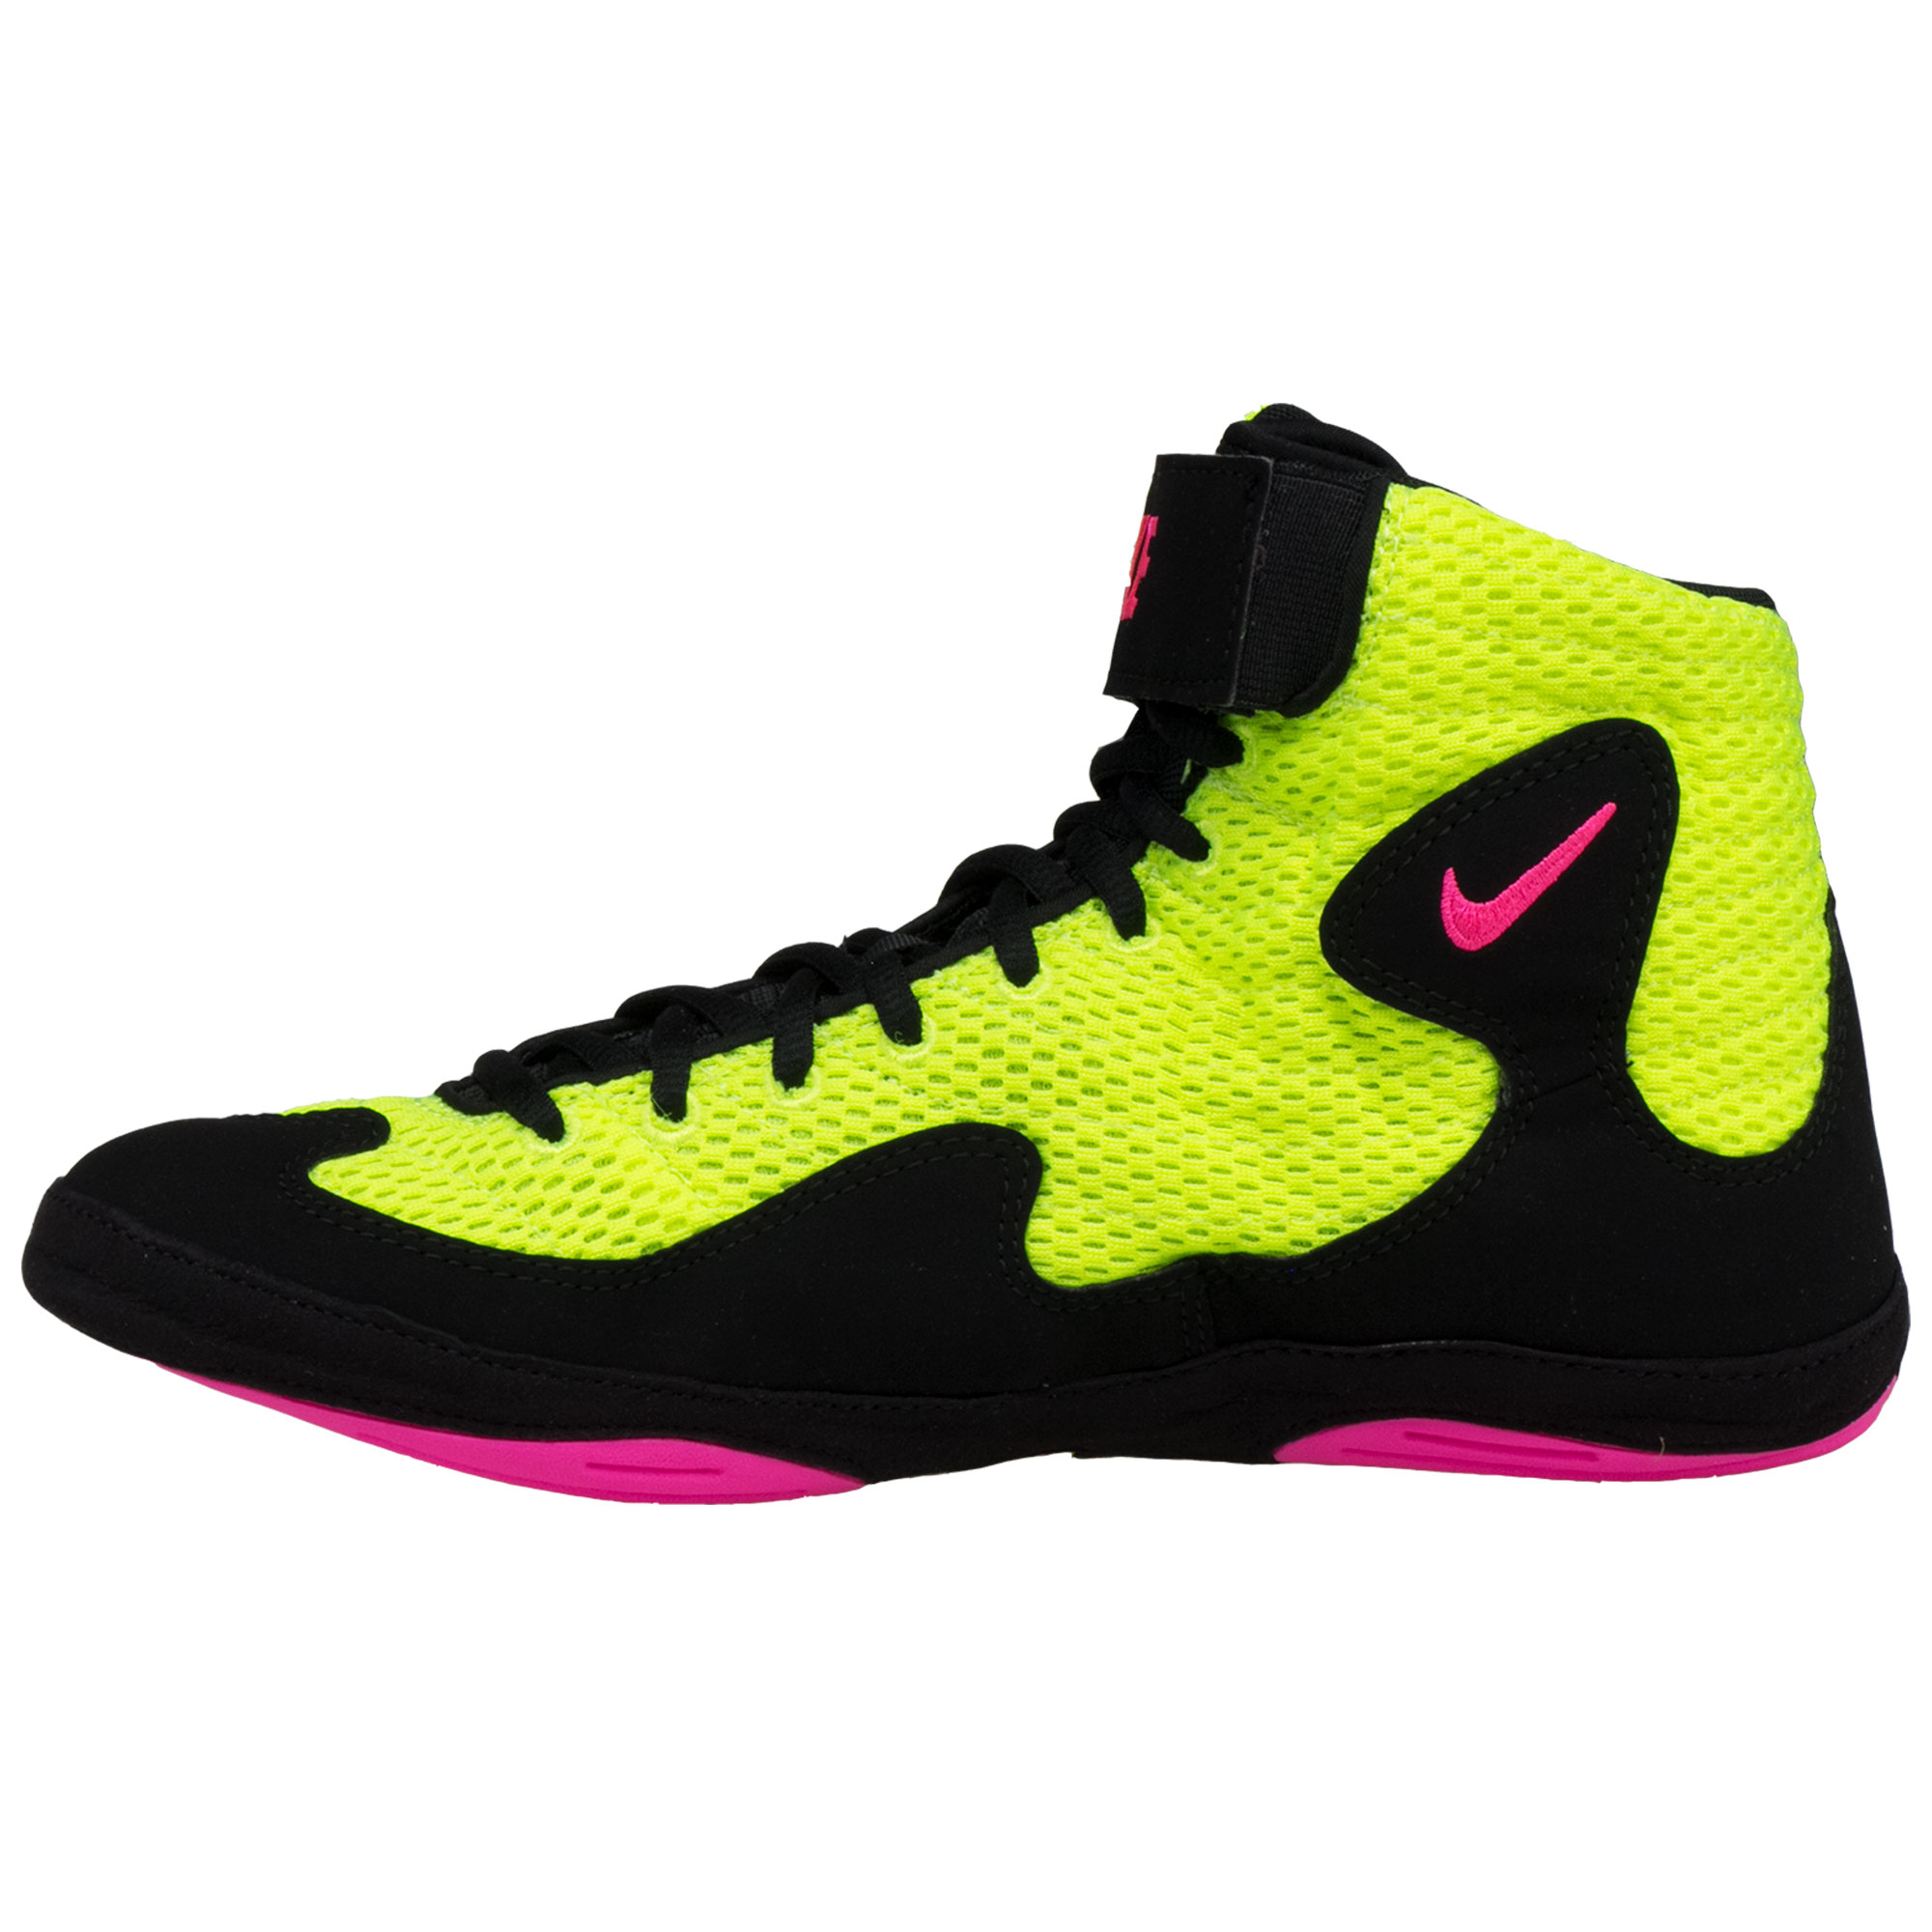 2f03eb1a1e5 ... Inflict 3 Unlimited Yellow Pink Black frontNike Inflict 3 Unlimited  Yellow Pink Black backNike Inflict 3 Unlimited Yellow Pink Black frontNike  Inflict 3 ...